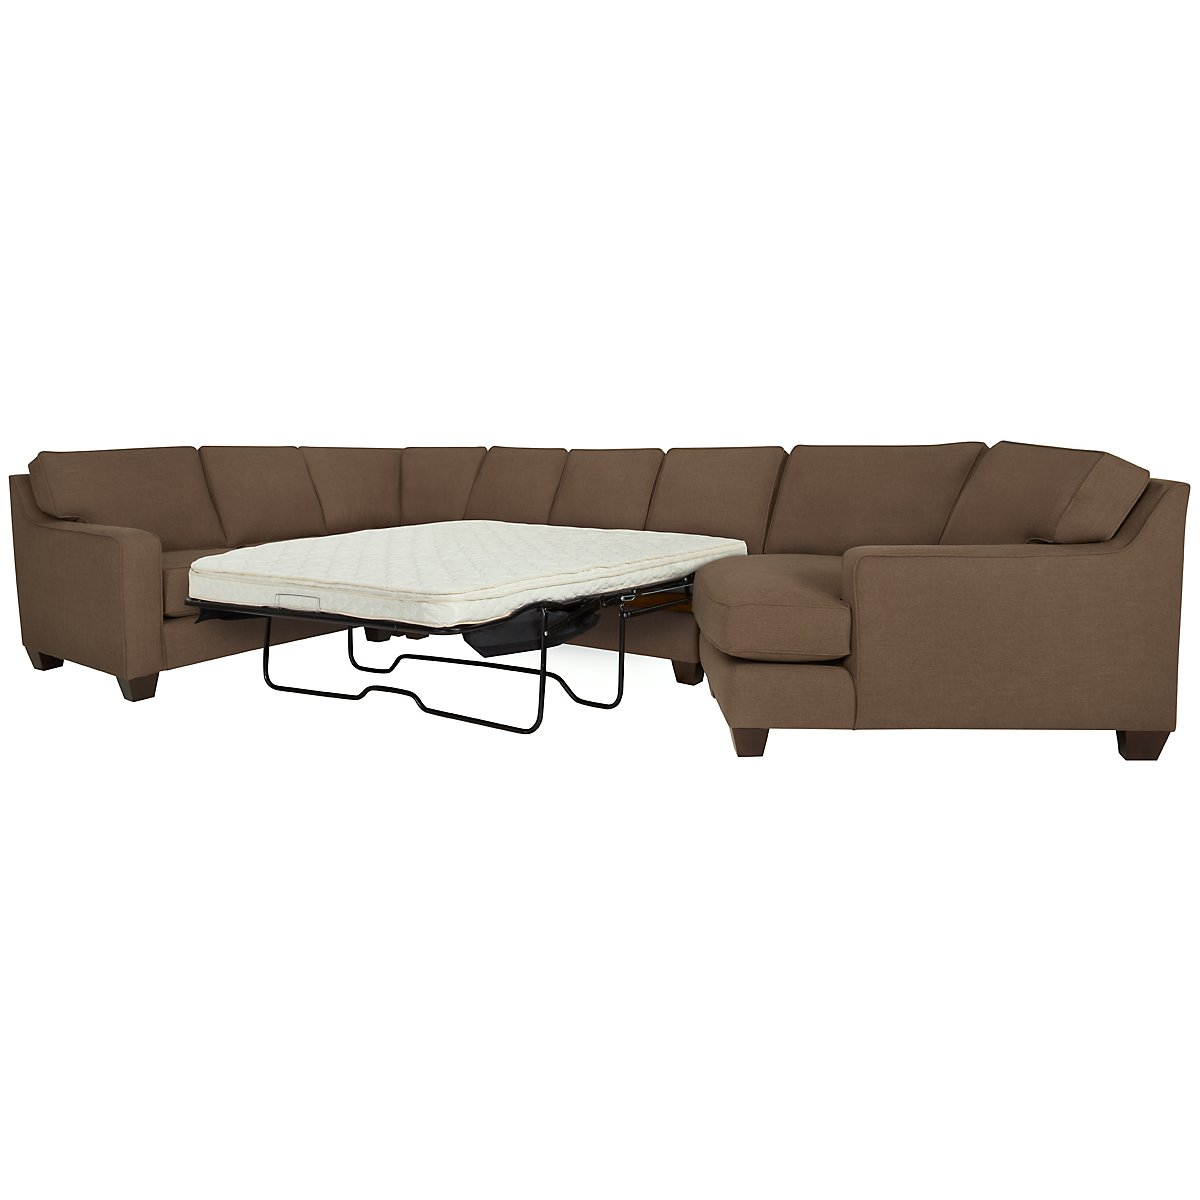 York Dark Brown Fabric Small Right Cuddler Innerspring Sleeper Sectional